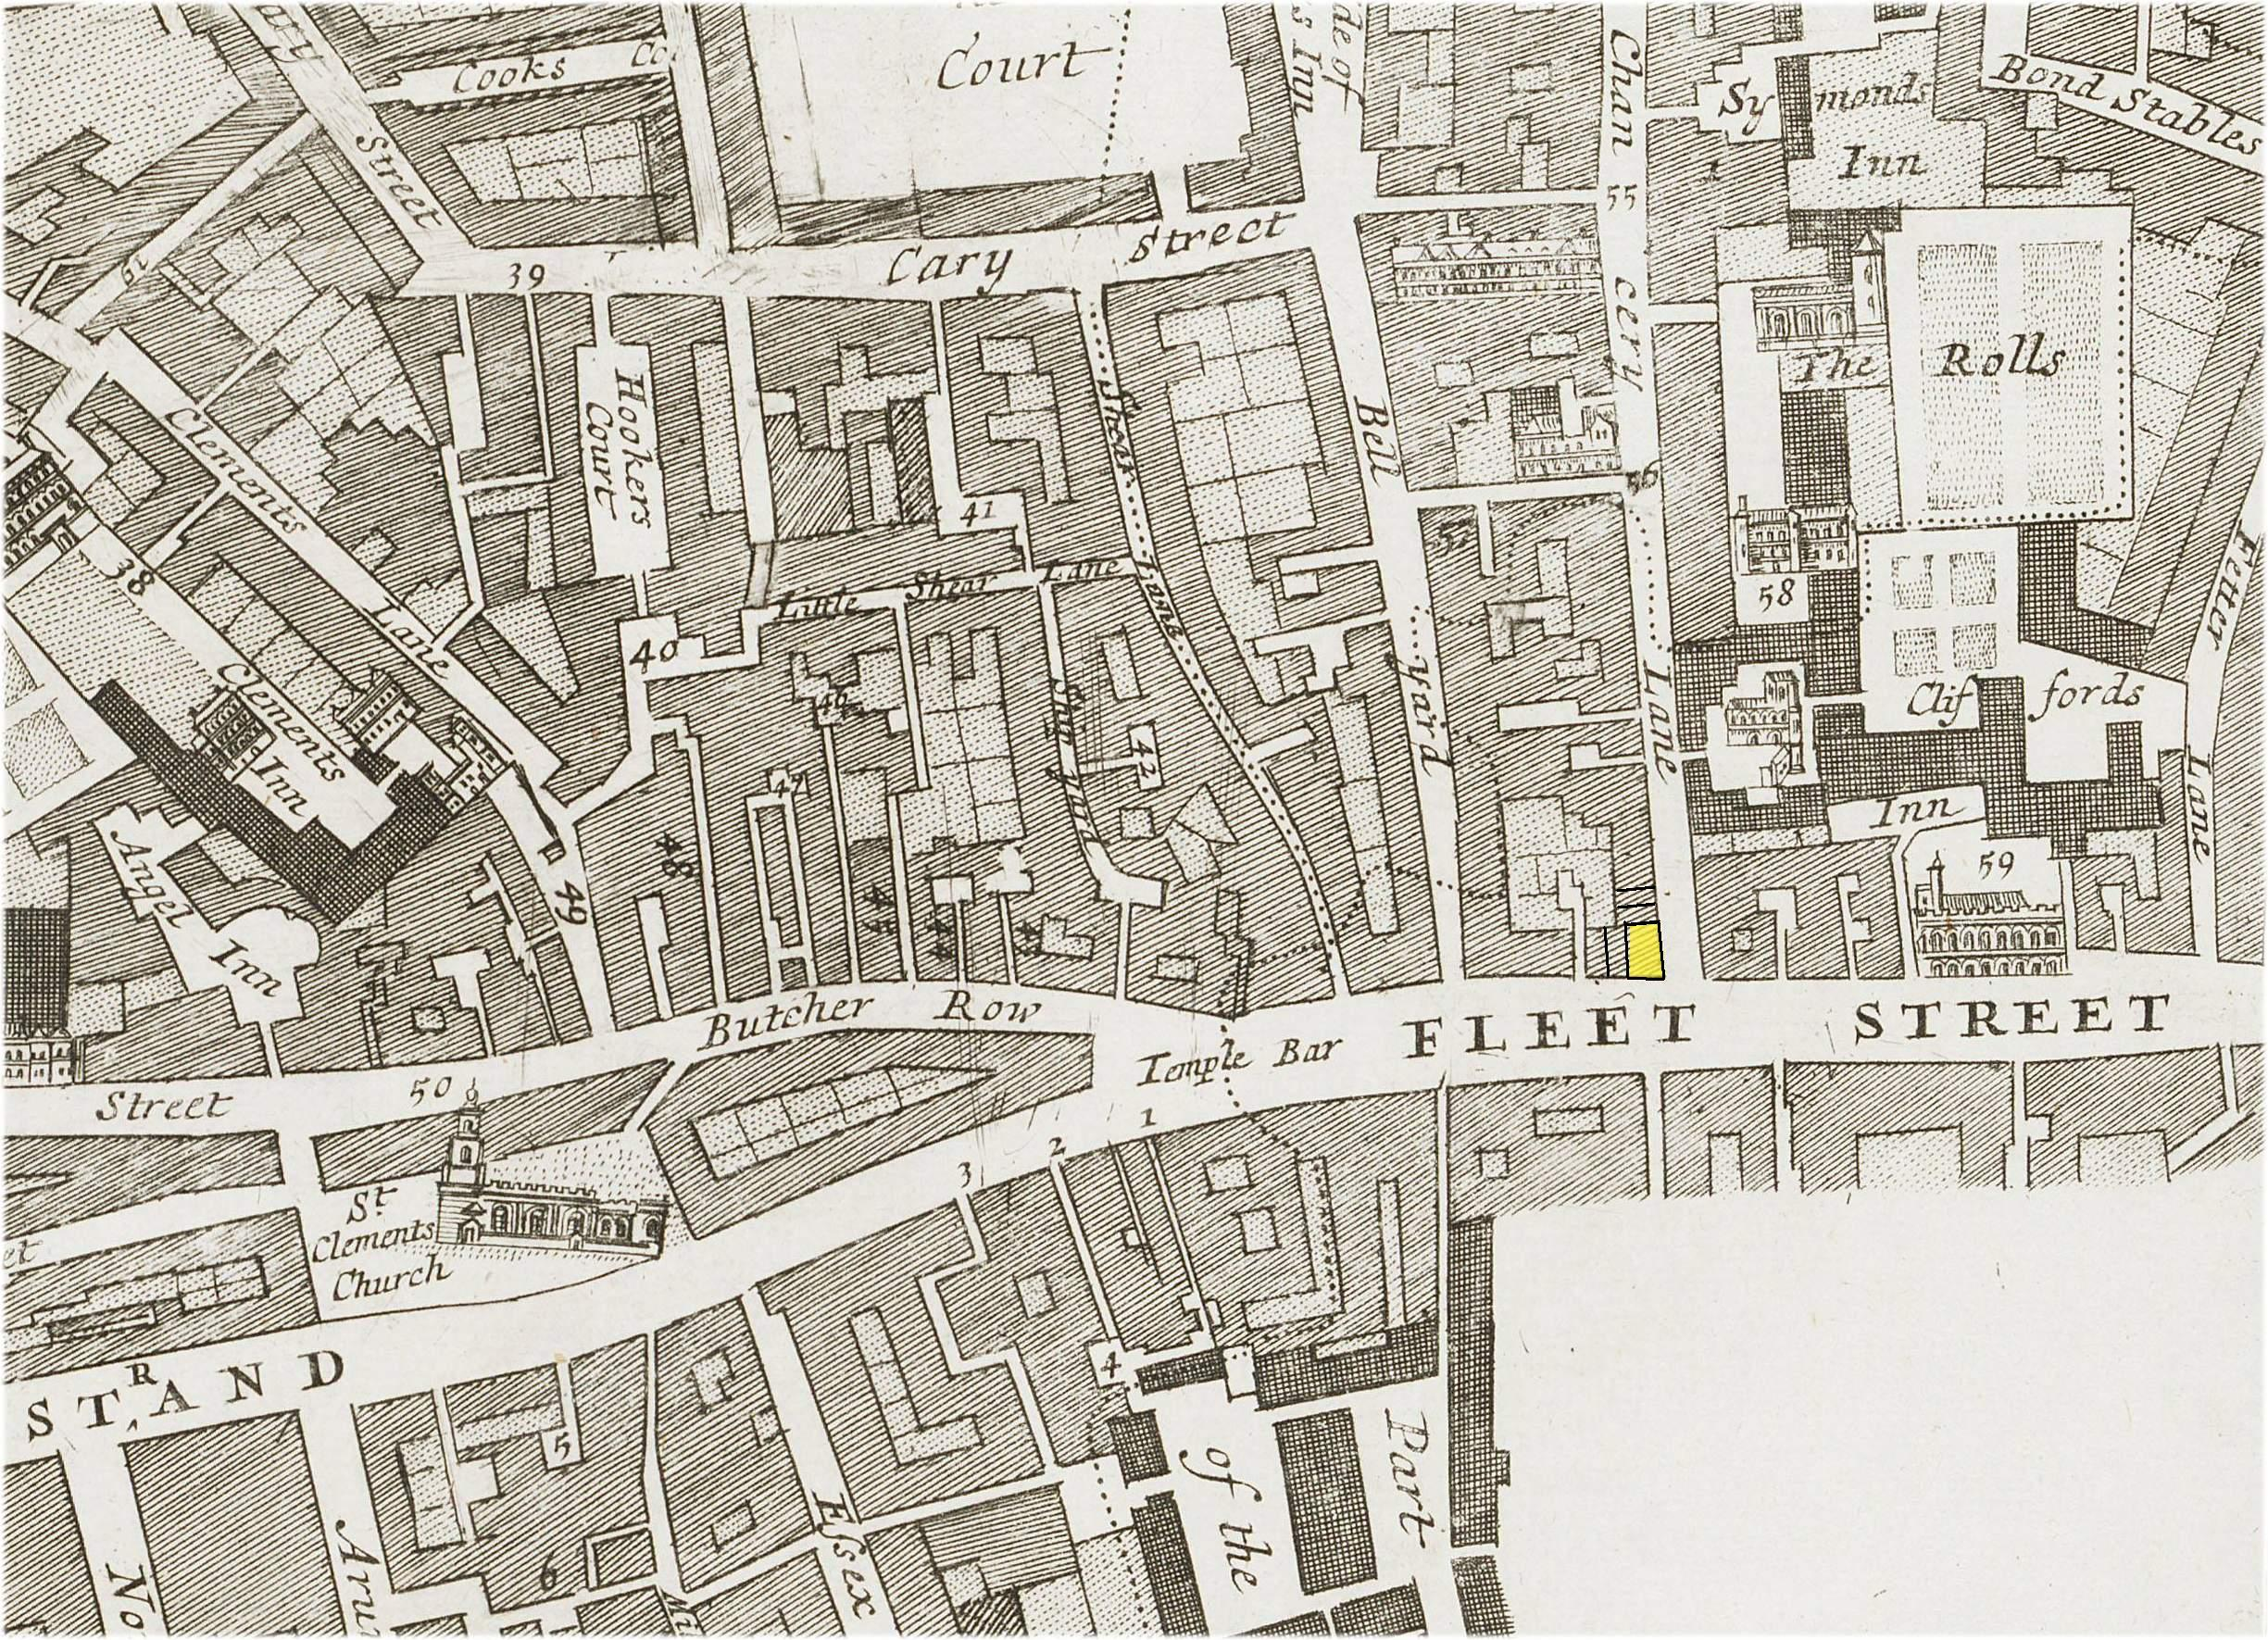 the location of the kings head tavern on the corner of chancery lane and fleet street